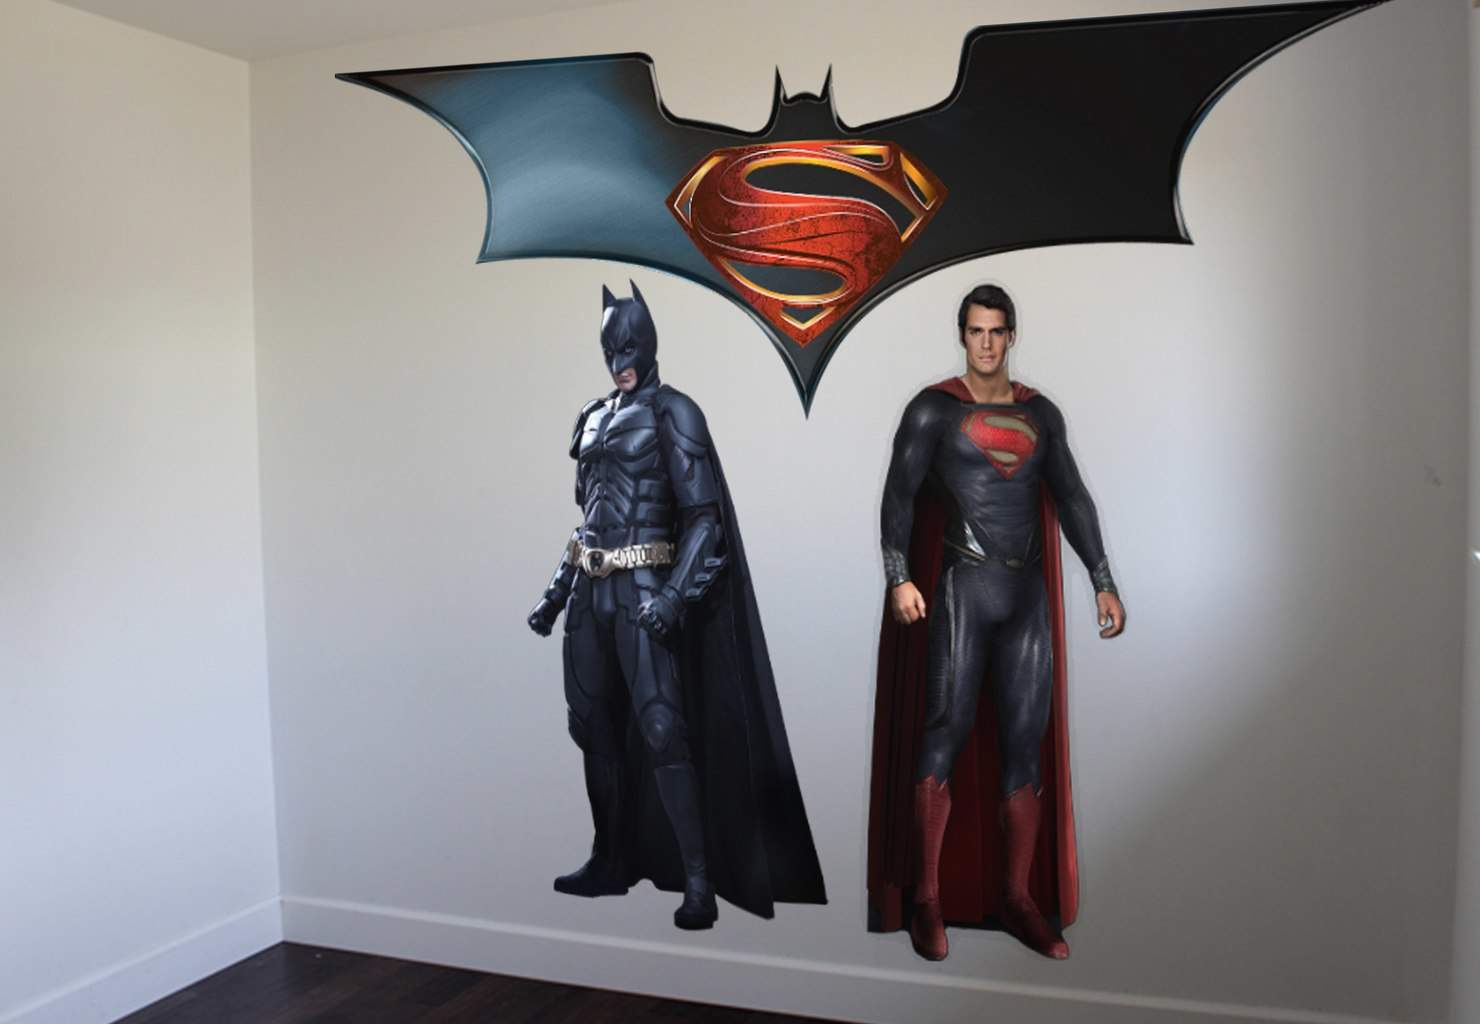 superman vs batman wall sticker on ey wall decals - superman v batman wall decal graphic